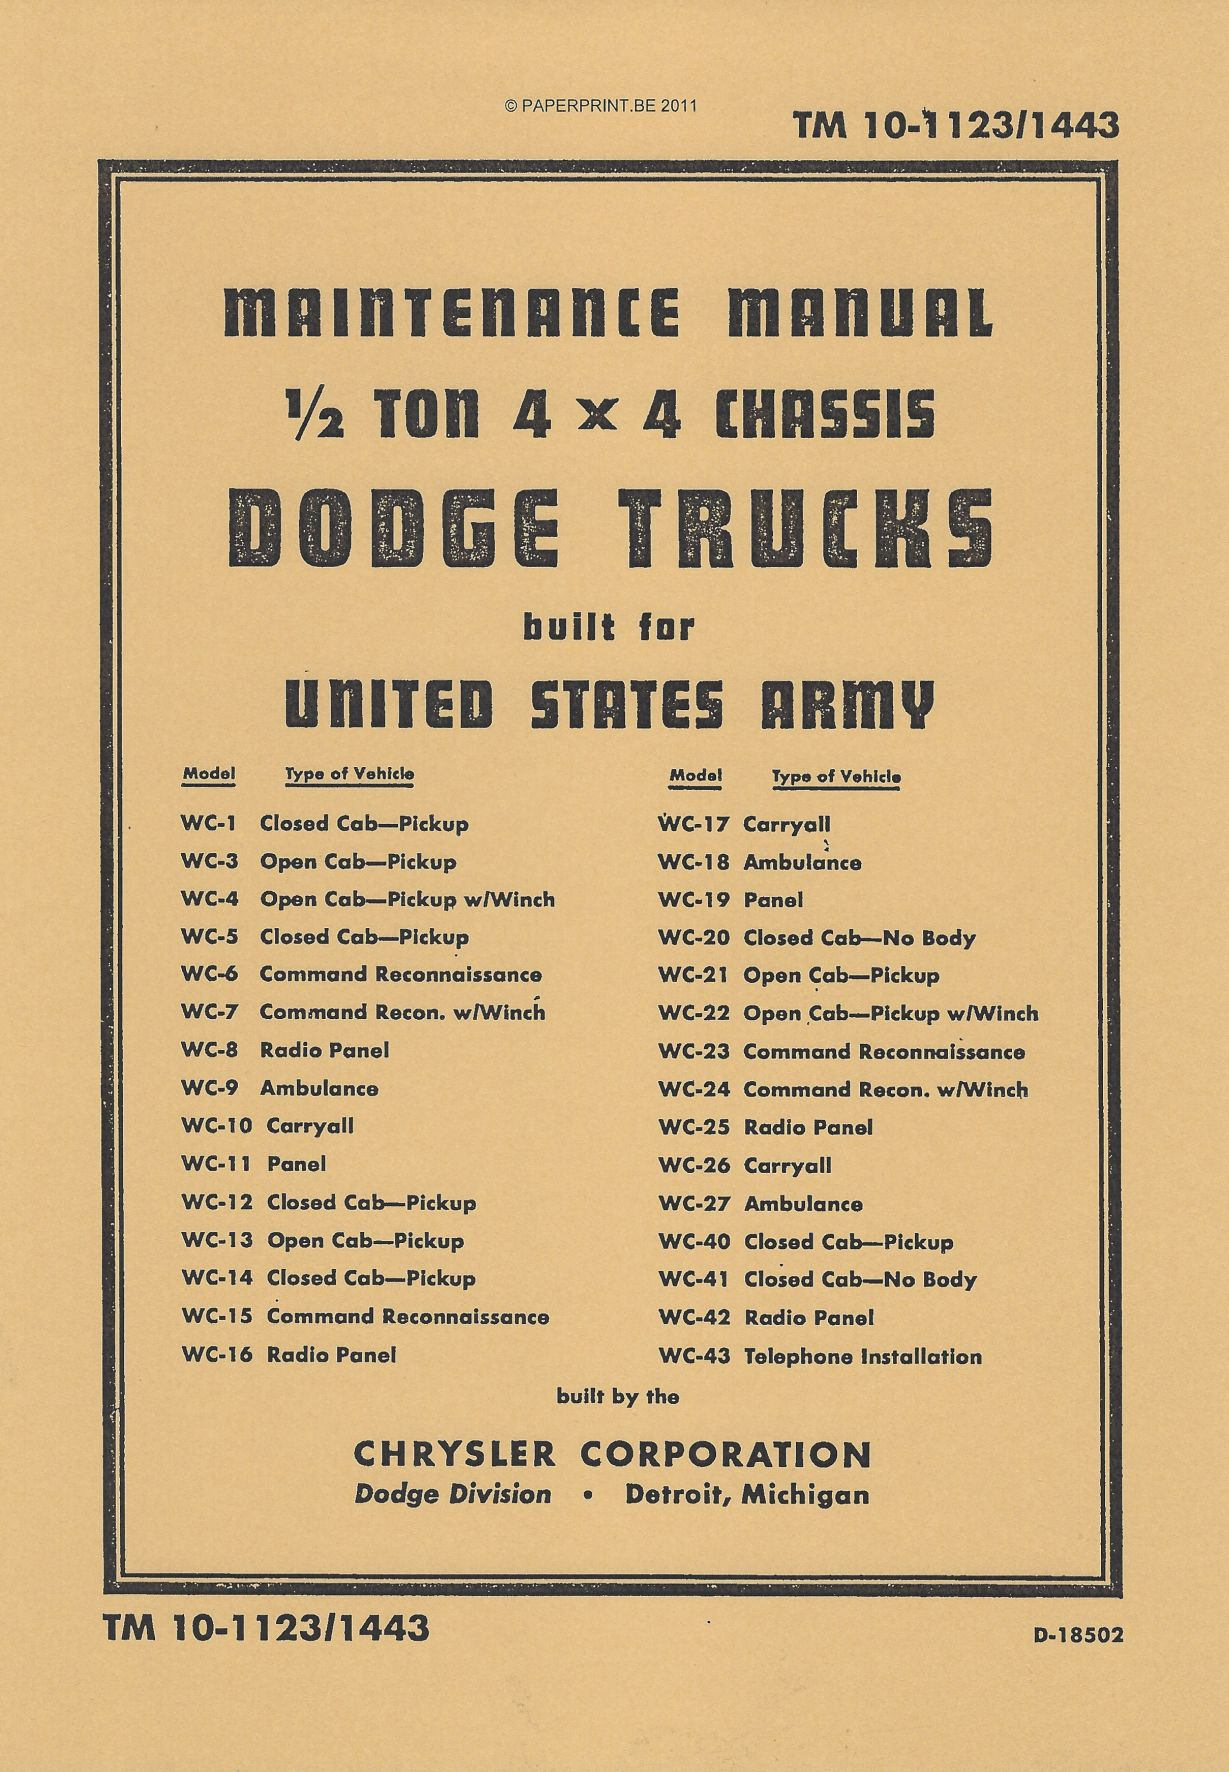 TM 10-1123/1443 US ½ TON 4x4 CHASSIS DODGE TRUCKS